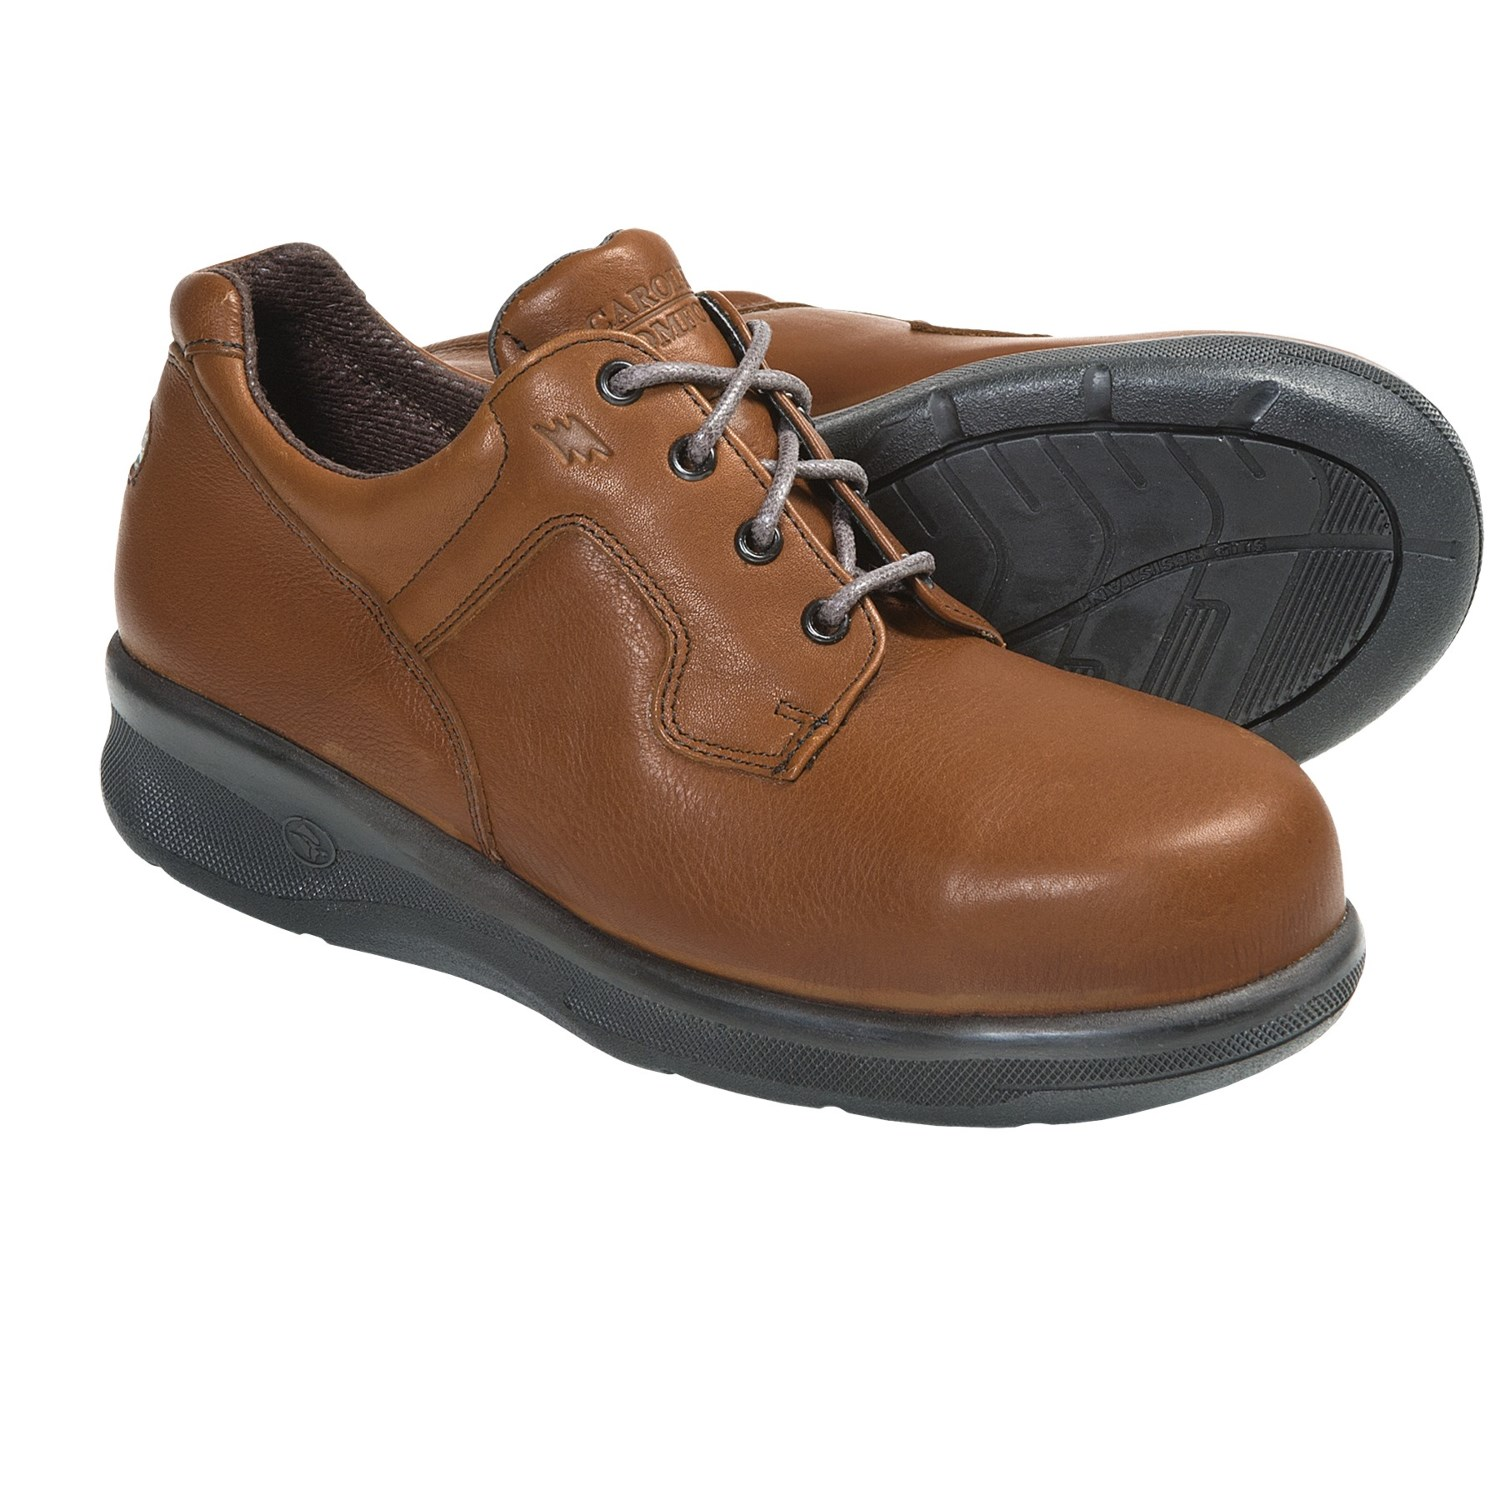 Shop for men's and women's shoes at ECCO® USA. Shoes, boots, sandals, sneakers, dress shoes, golf shoes, hiking shoes, leather handbags, accessories & more. Free Standard Shipping on .